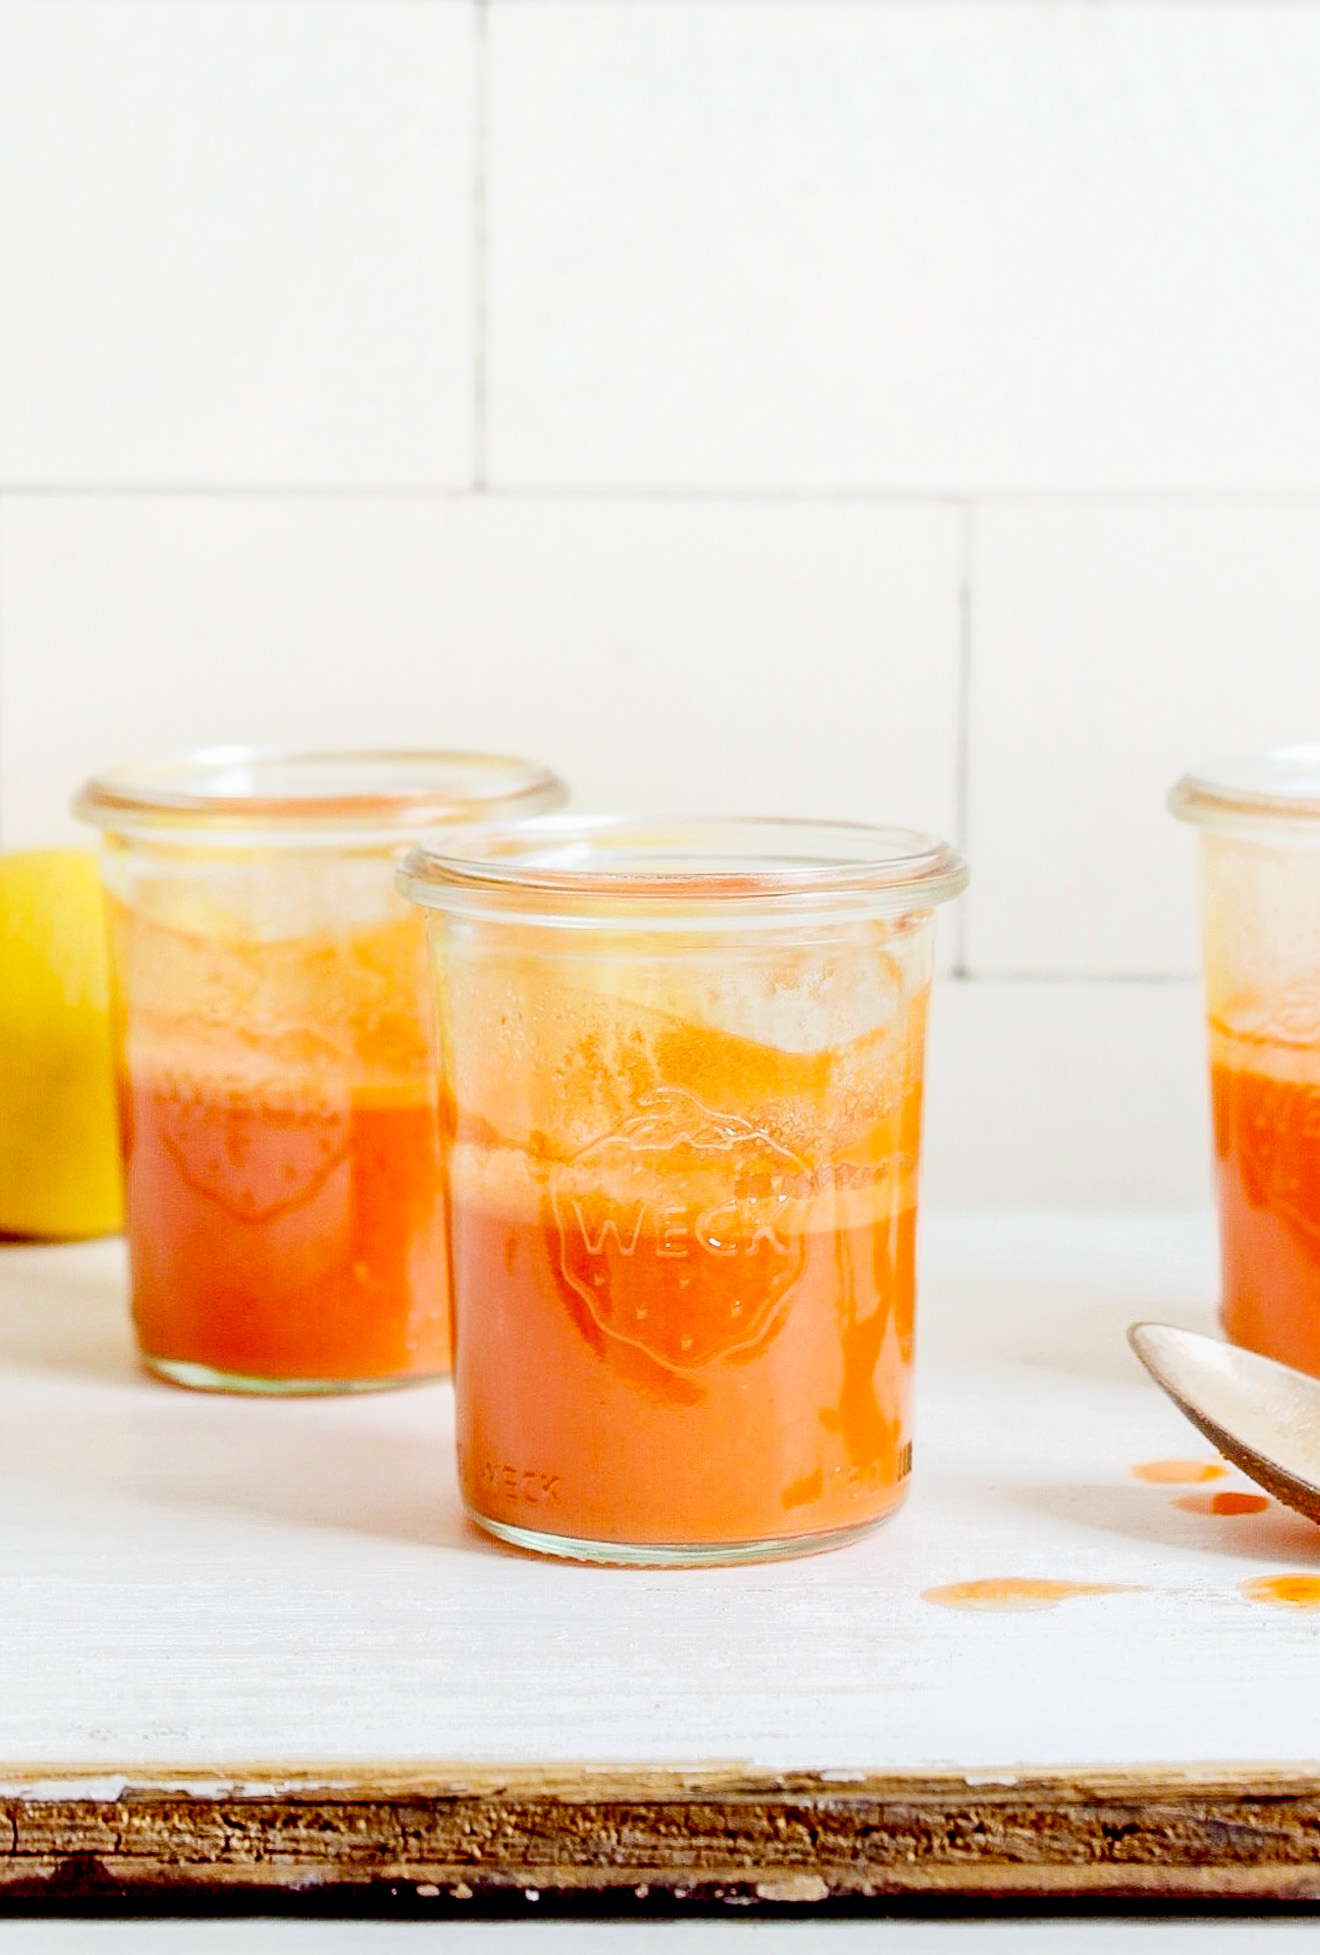 Immunity Juice Shots in jars